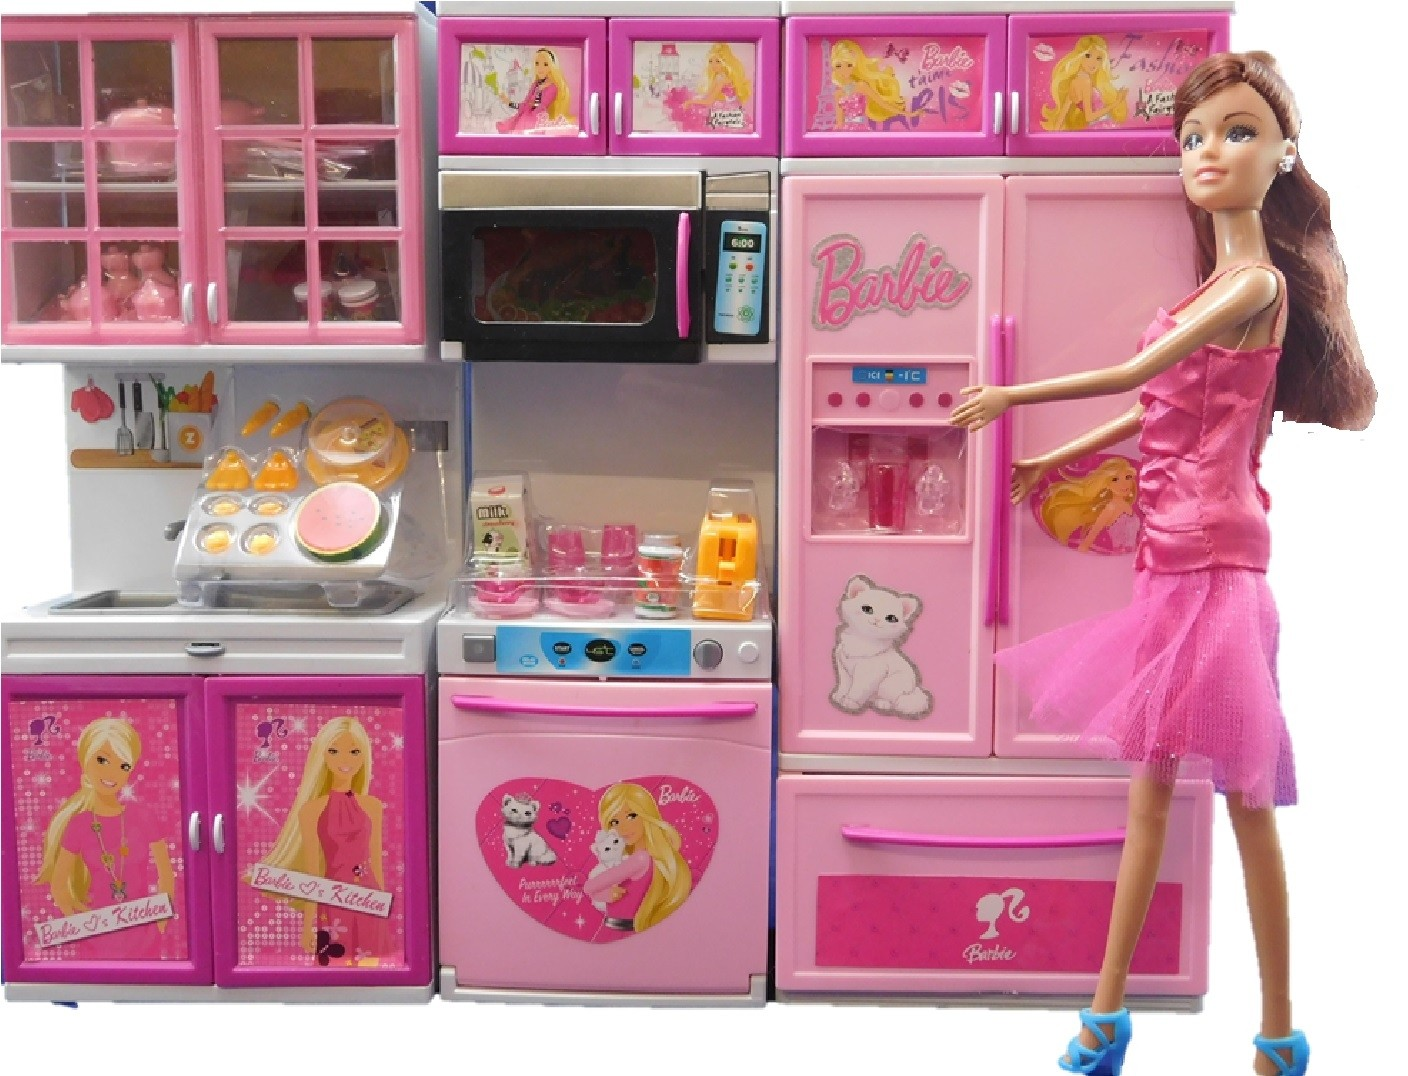 Toy Doll Kitchen Dishwasher Microwave Fridge Kitchen Play Set With Doll